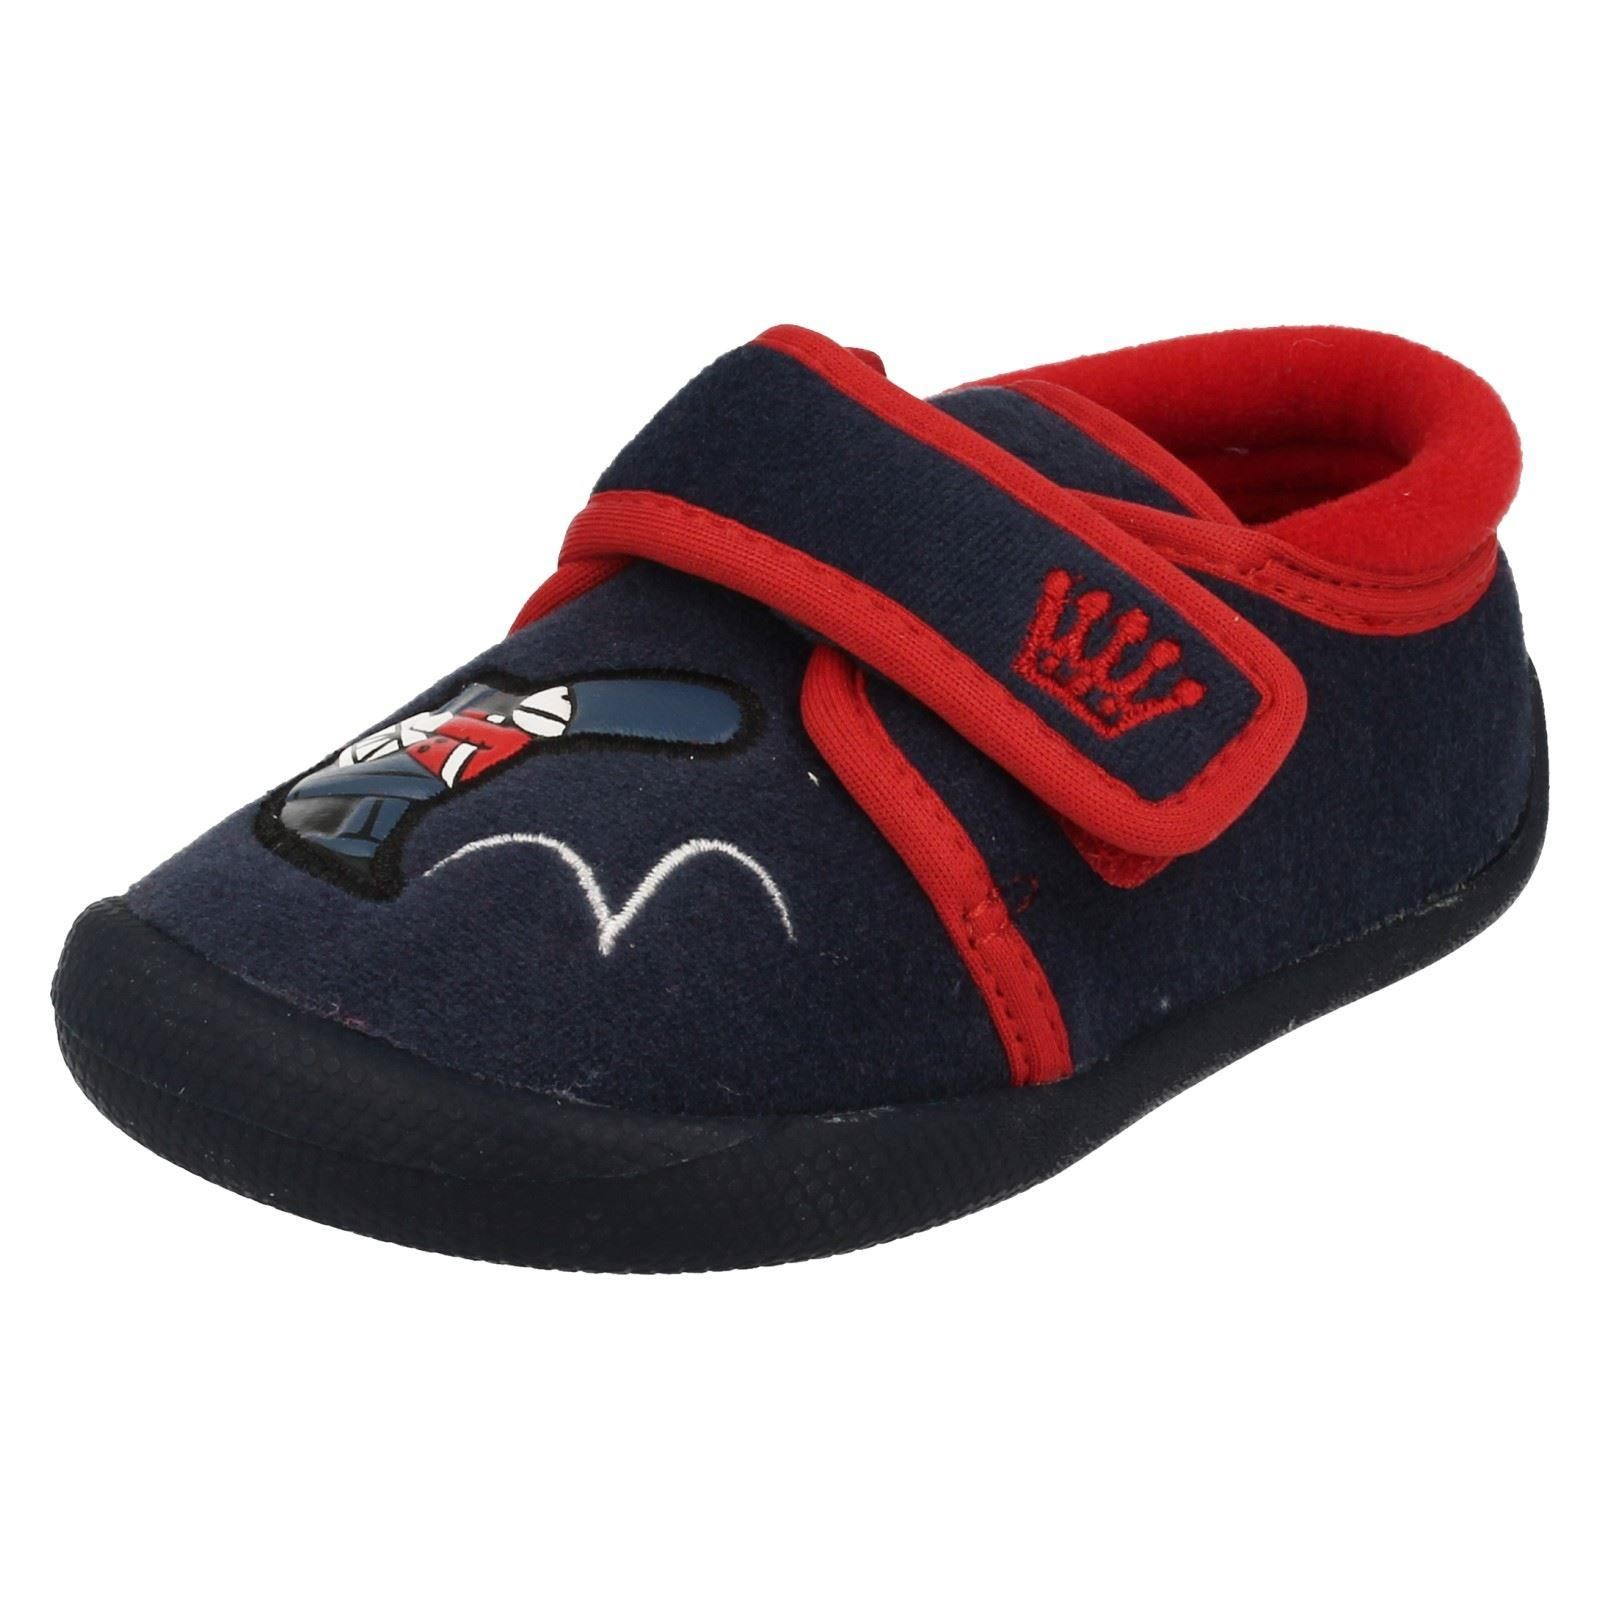 Boys Slippers Sale: Save Up to 50% Off! Shop northtercessbudh.cf's huge selection of Slippers for Boys - Over 70 styles available. FREE Shipping & Exchanges, and a % price guarantee!